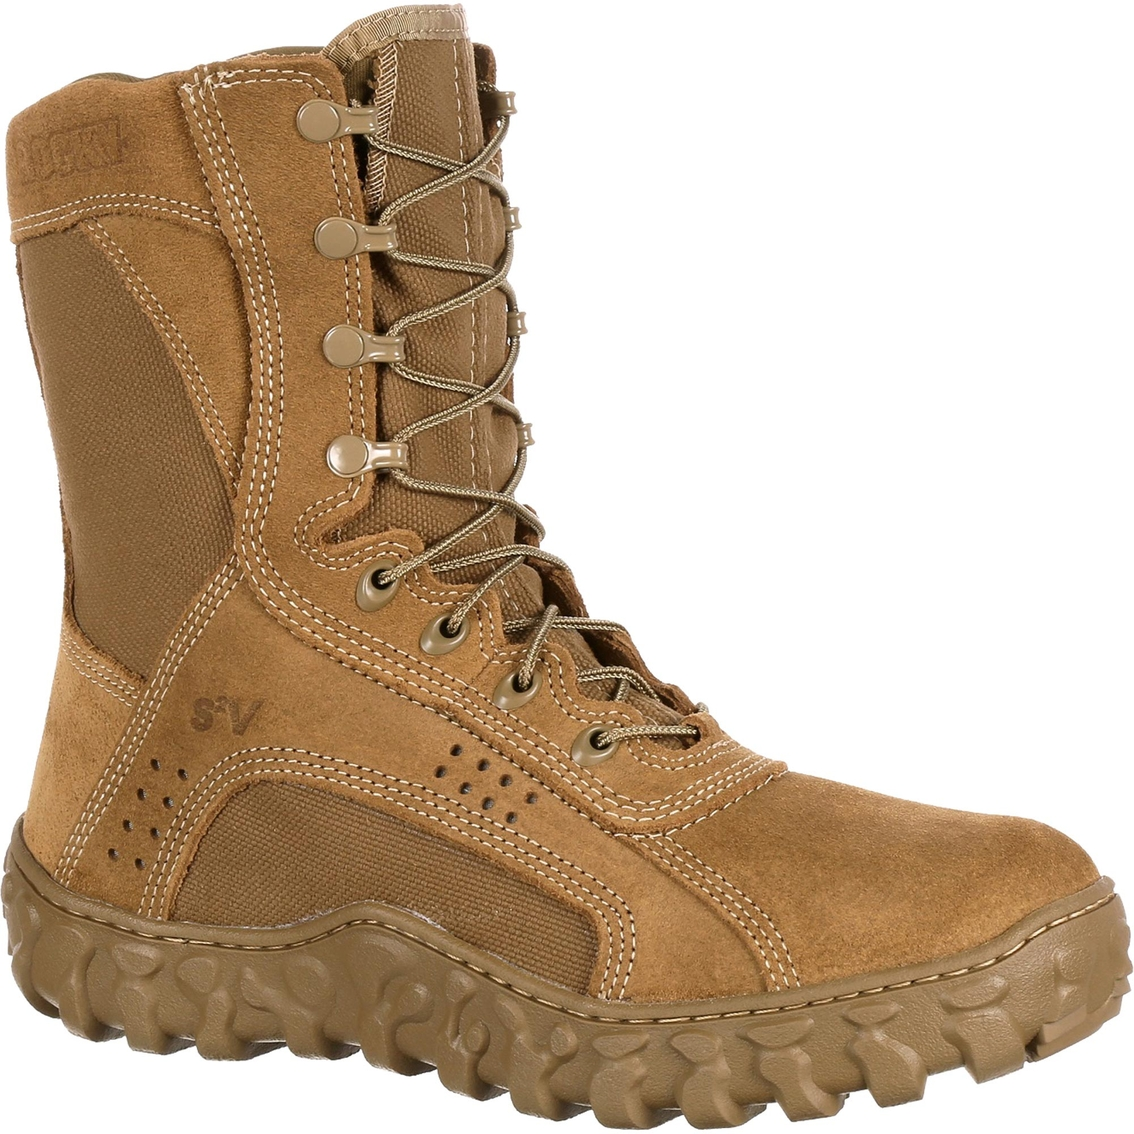 Rocky Coyote S2V Tactical Military Boots